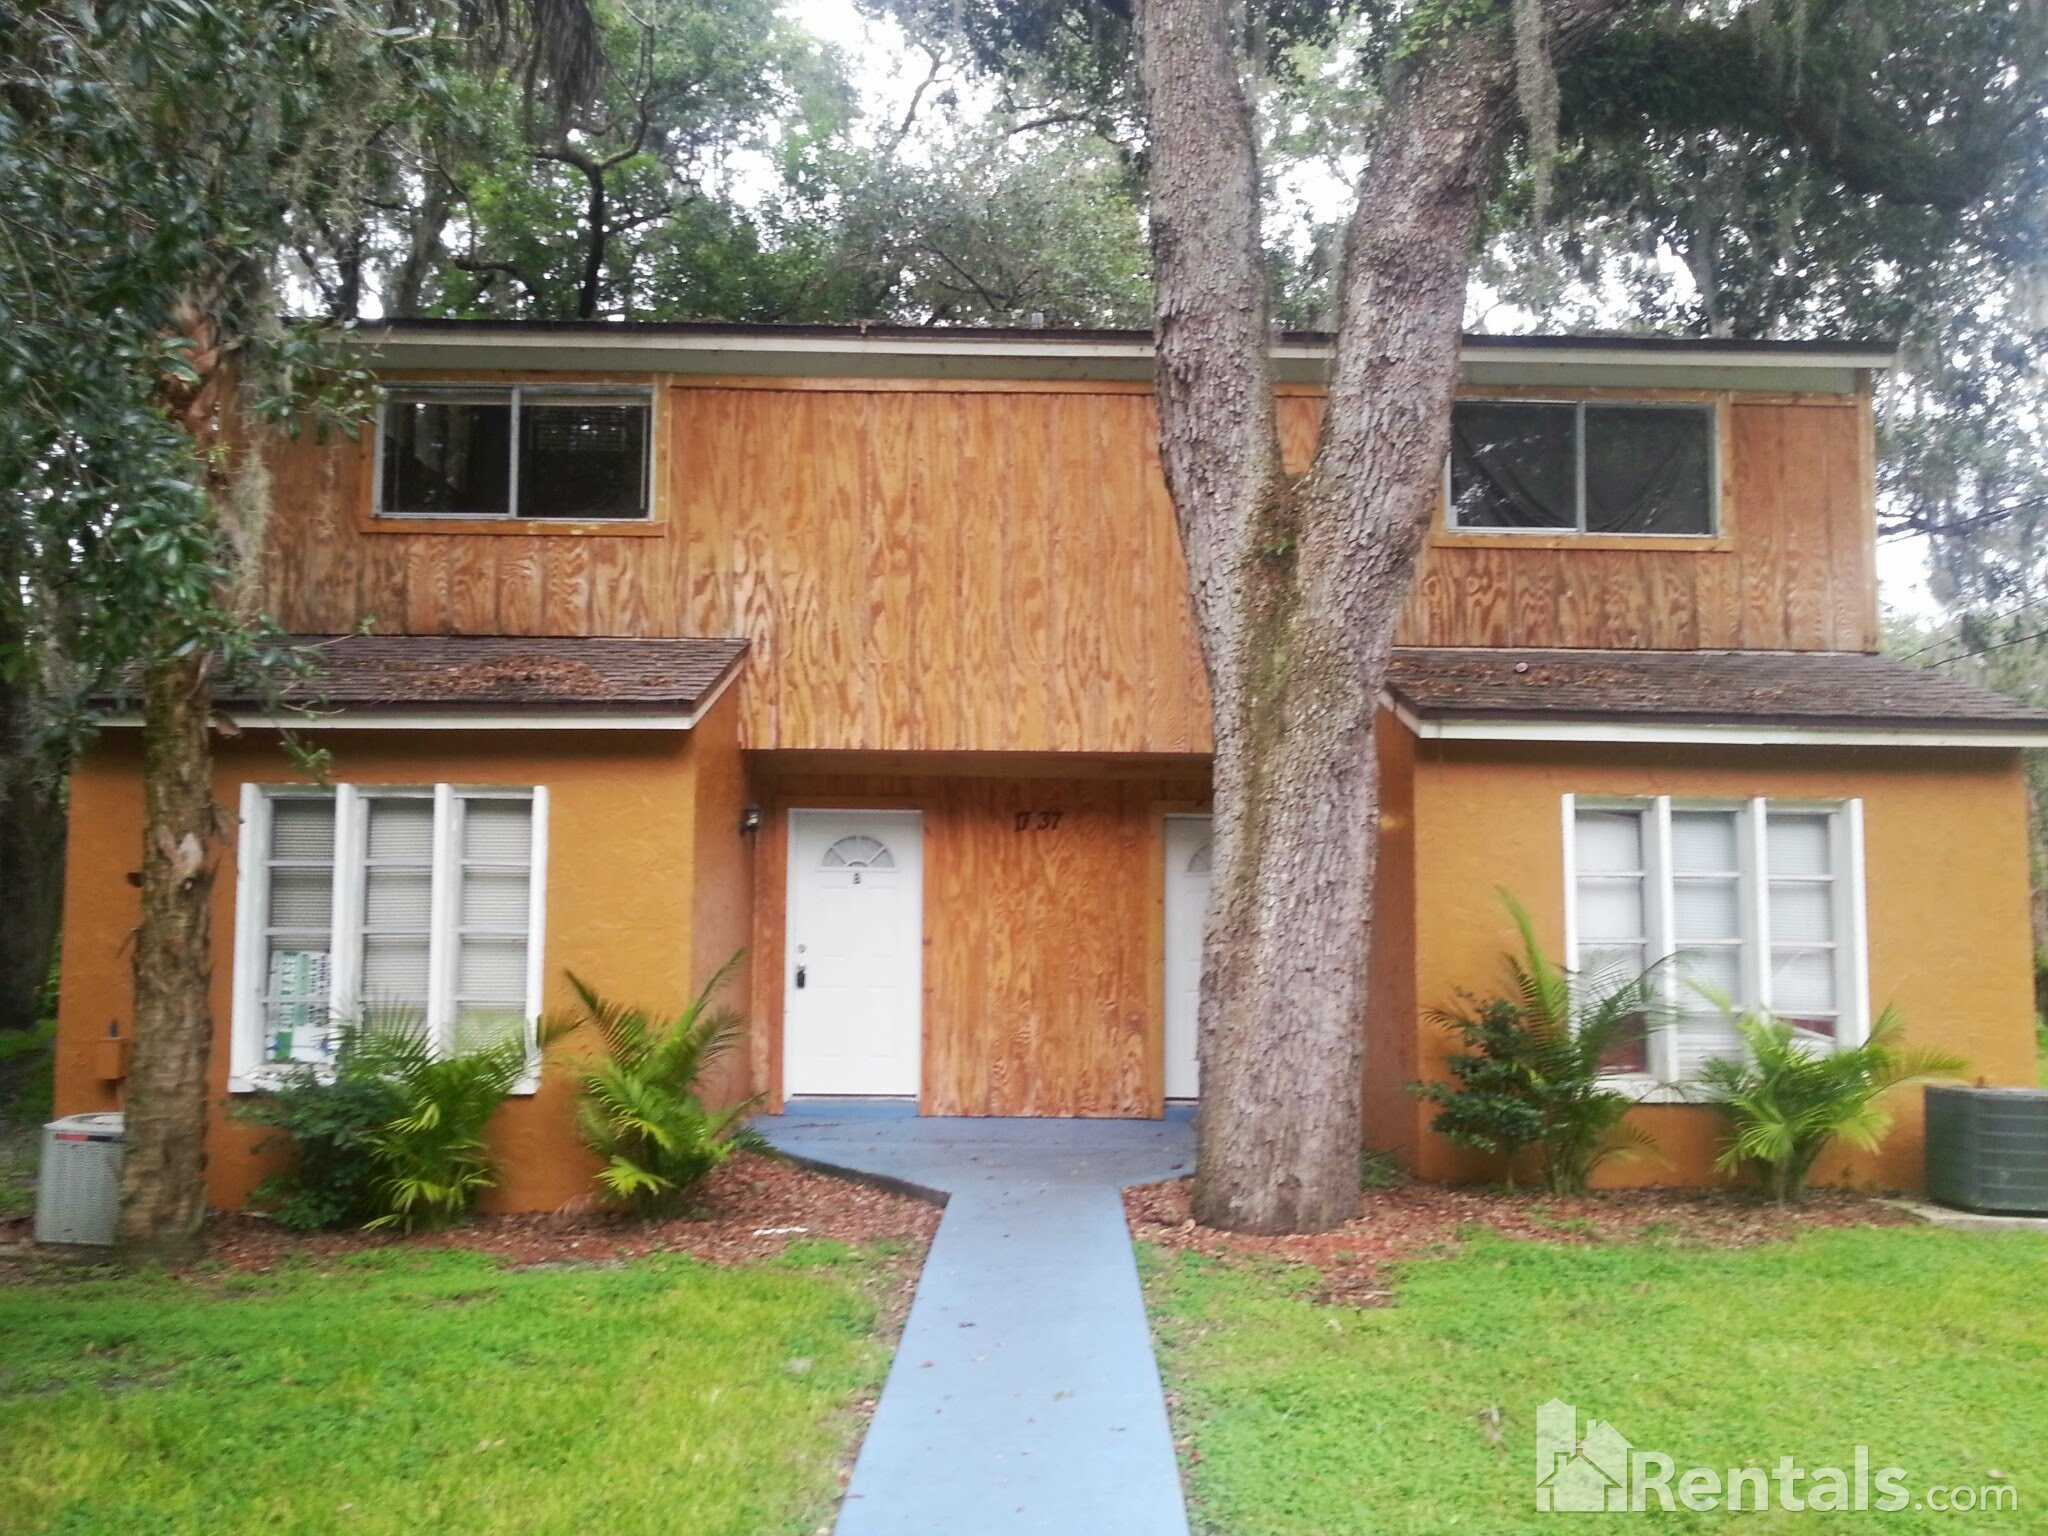 Condo for Rent in Fern Cliff